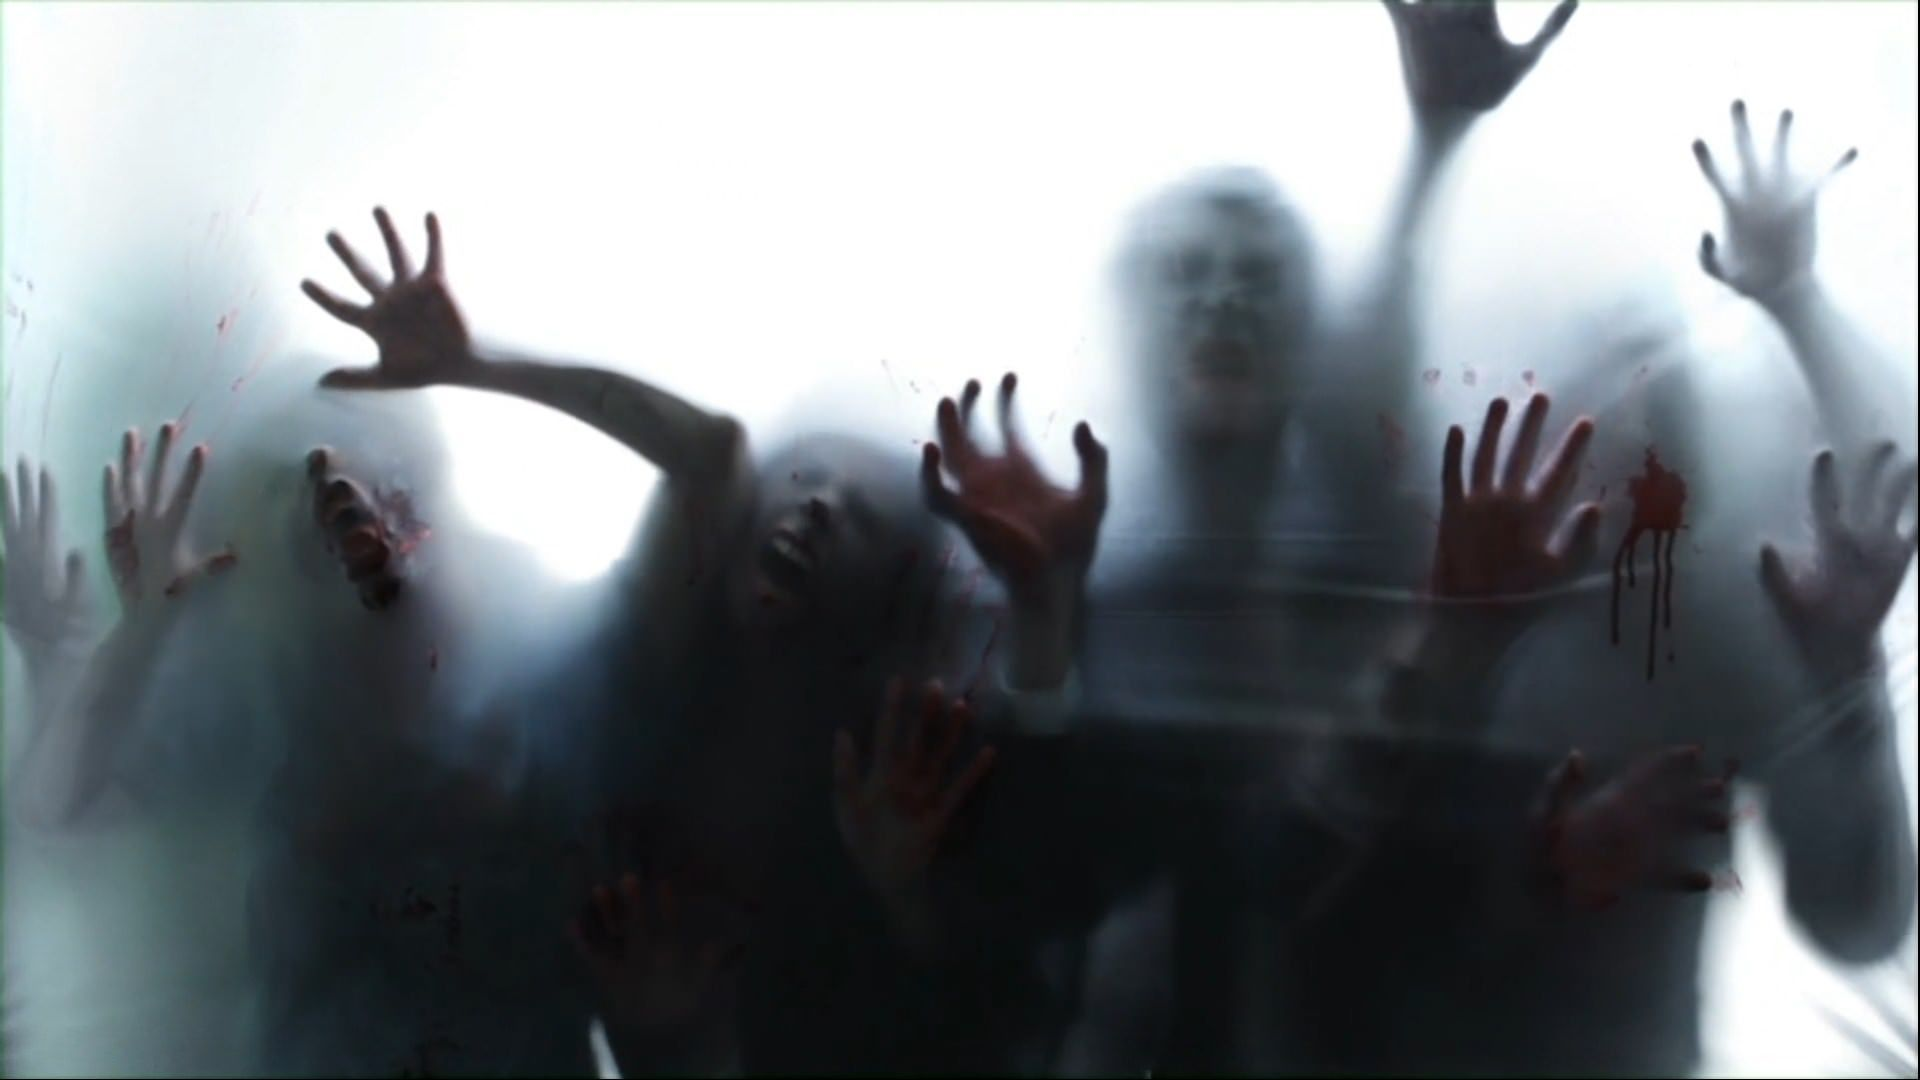 Wallpaper Zombie Invasion In 2020 Zombie Wallpaper Zombie Live Wallpaper For Pc